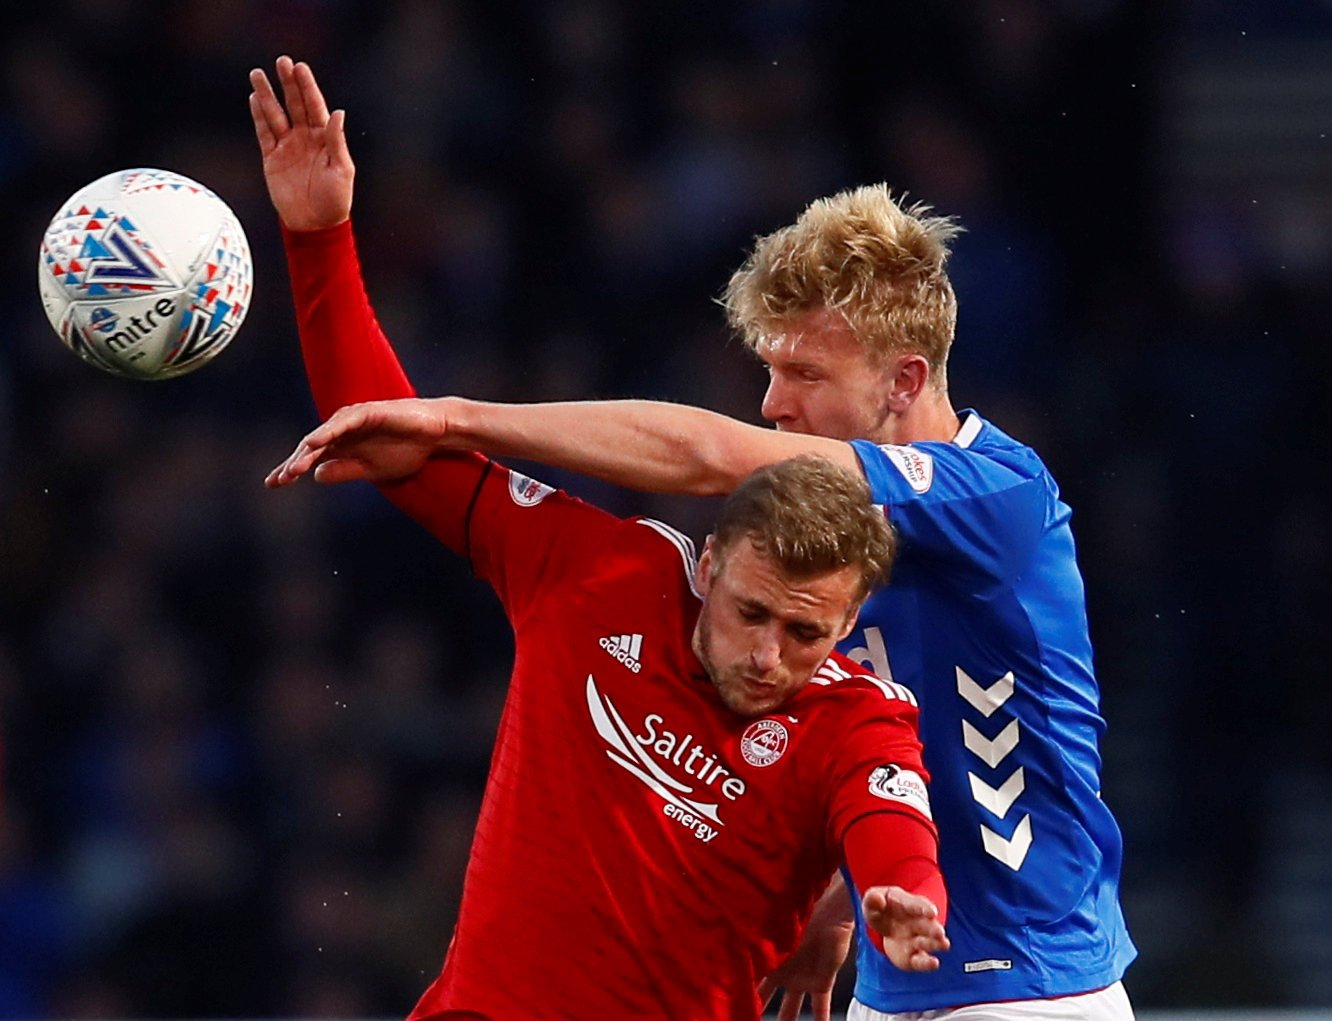 Steven Gerrard to block any Nottingham Forest attempt to bring Joe Worrall back